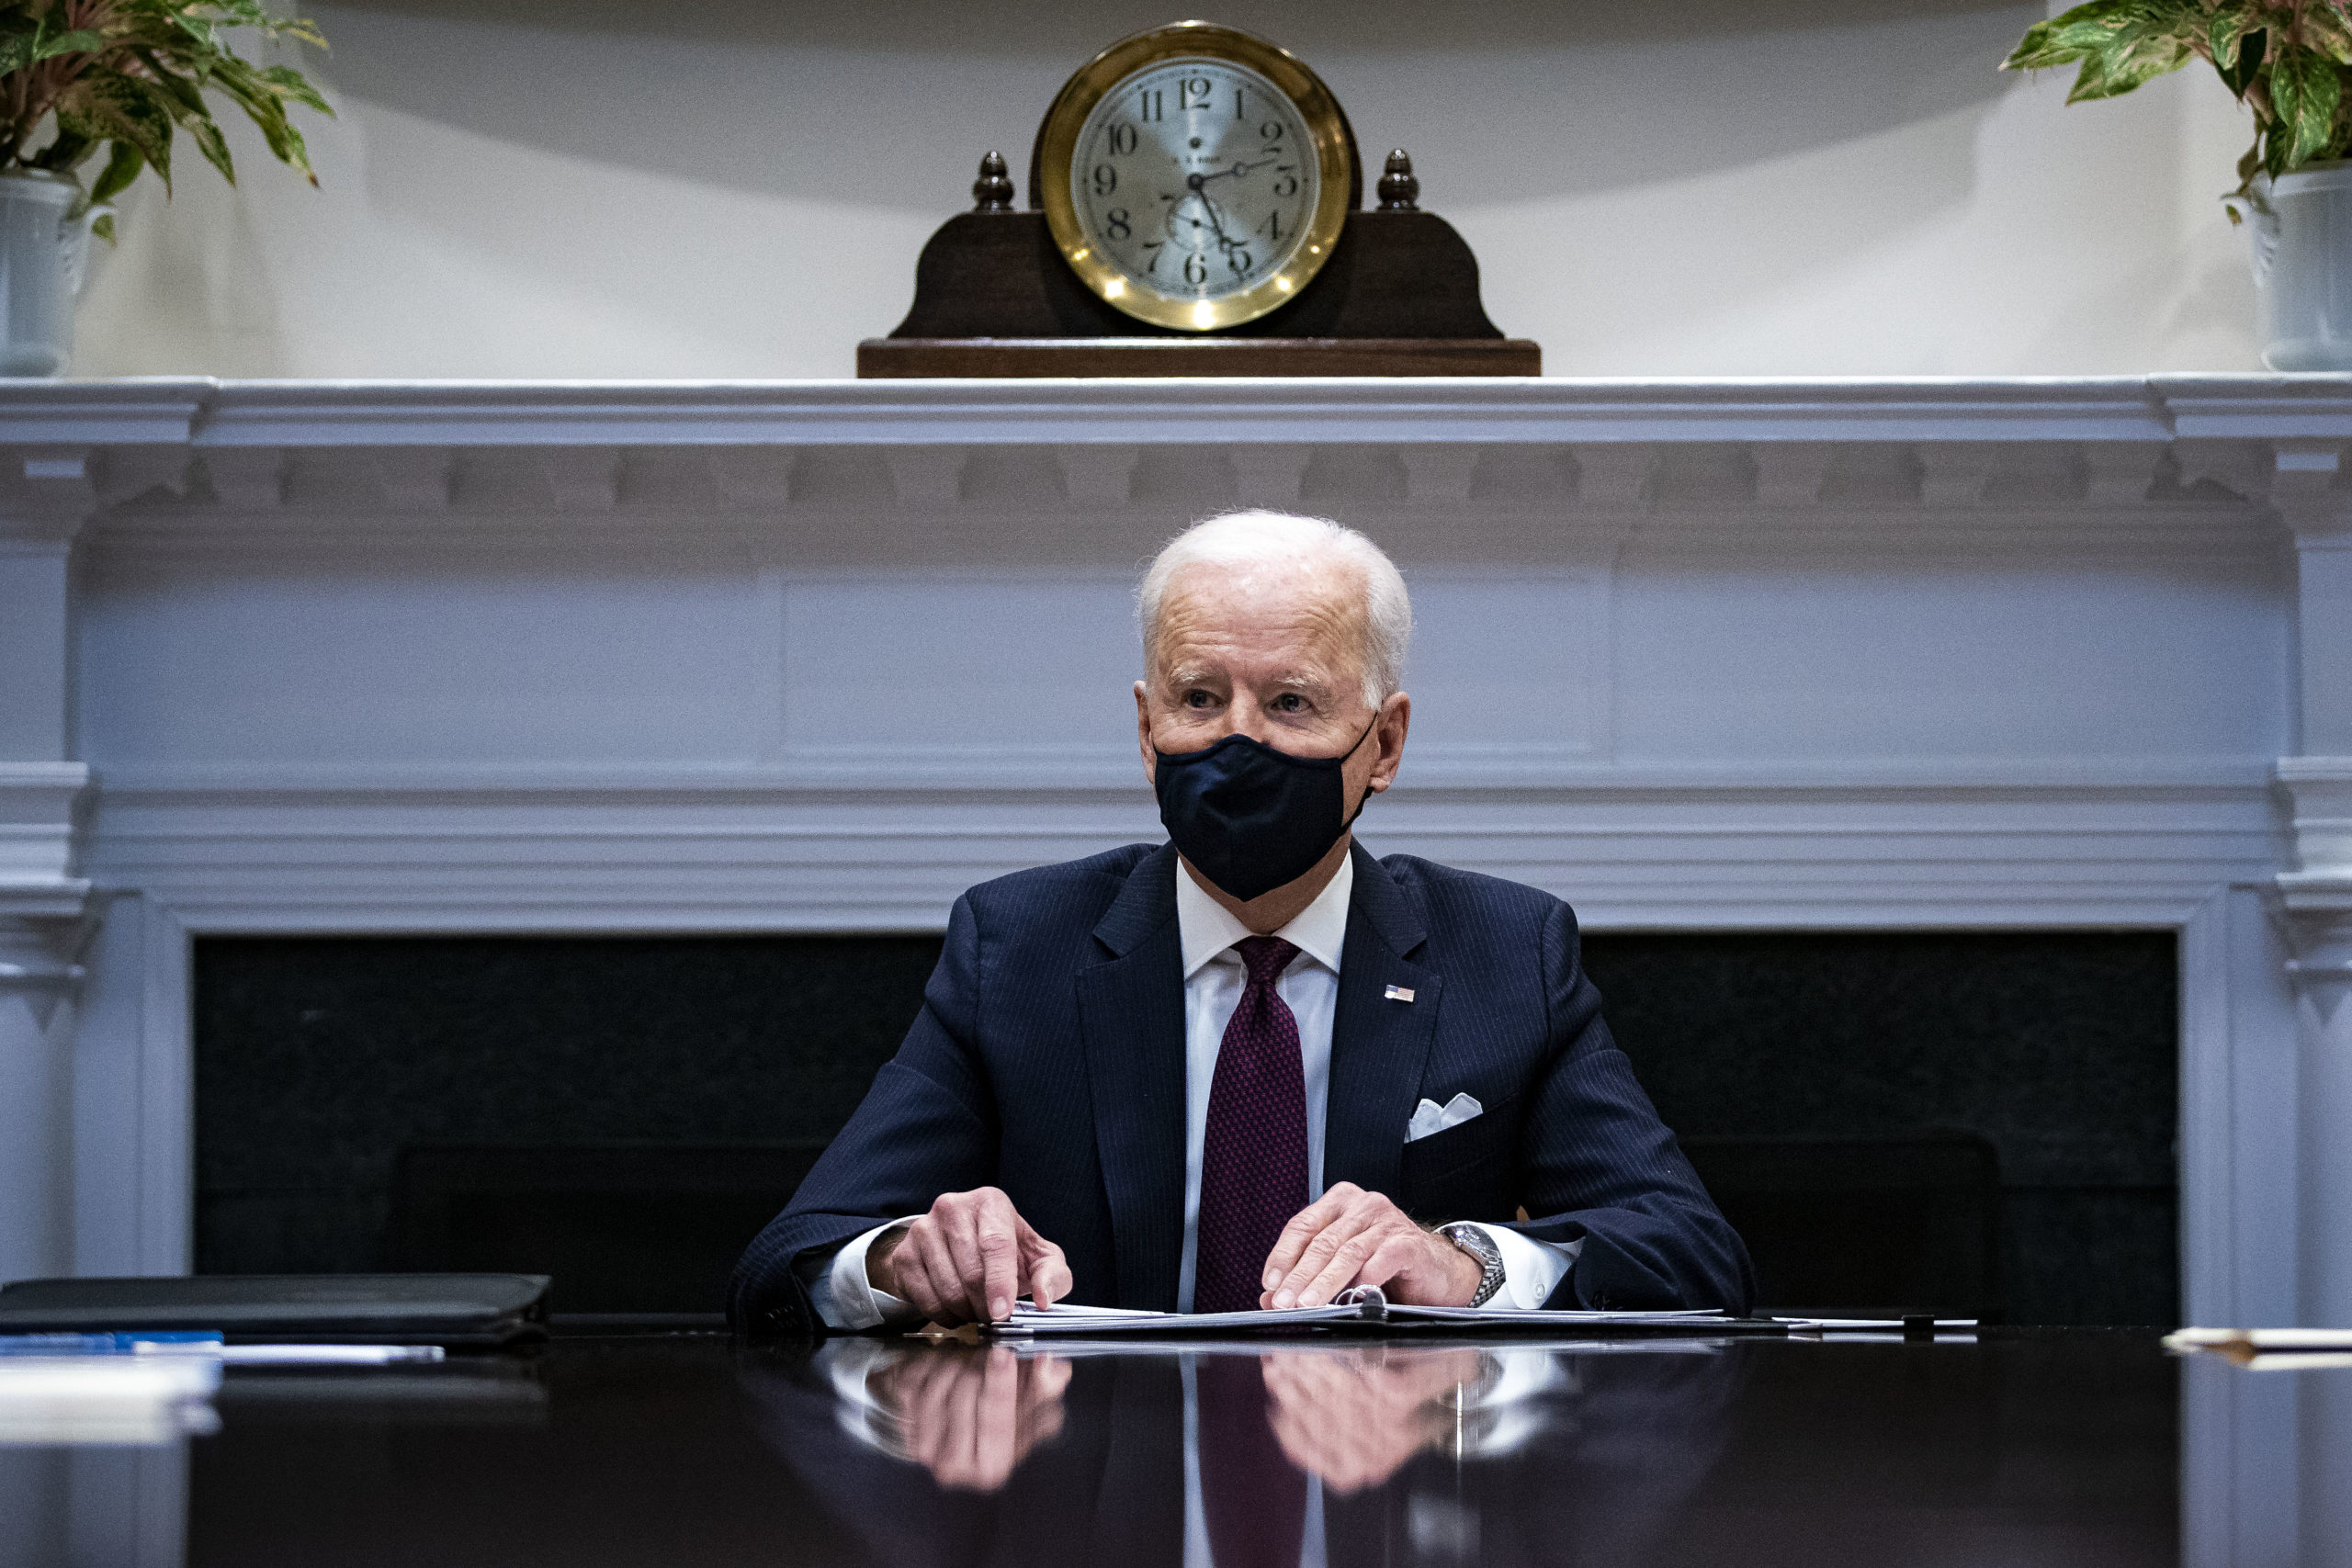 """WASHINGTON, DC - MARCH 05: President Joe Biden speaks during a meeting with Treasury Secretary Janet Yellen and Vice President Kamala Harris in the Roosevelt Room of the White House, March 5, 2021 in Washington, DC. Yellen has recently commented that bitcoin is an """"extremely inefficient"""" way to conduct monetary transactions. (Photo by Al Drago-Pool/Getty Images)"""